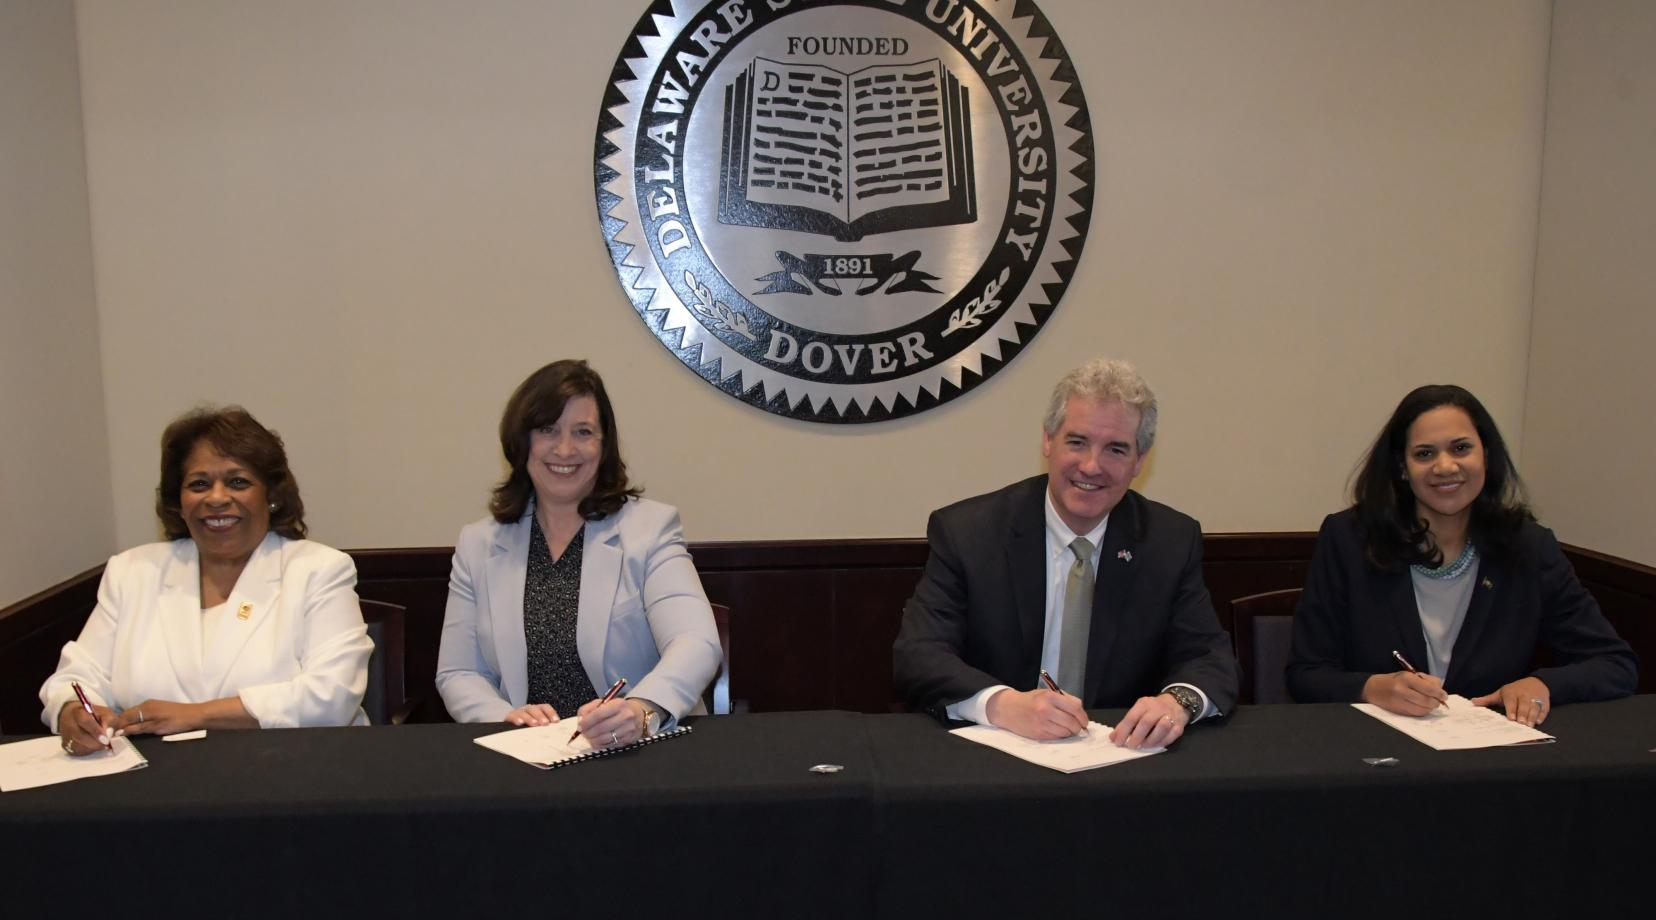 (L-r) University President Wilma Mishoe, EPA Deputy Director Cinday Caporale, DNREC Secretary Shawn M. Garvin and DHSS Secretary Kara Odom Walker sign a new agreement that will provide Delaware State University students internship and research opportunities as well as promote environmental stewardship at the institution.